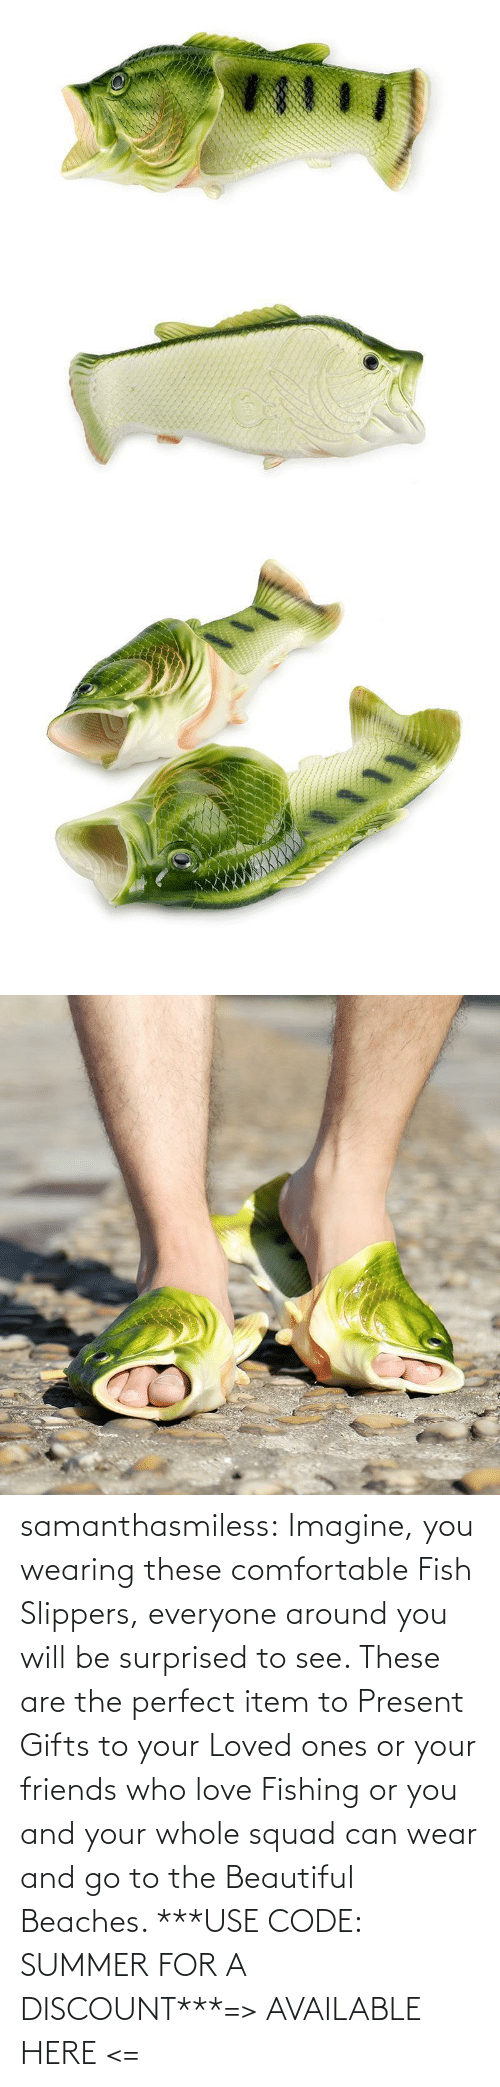 beautiful: samanthasmiless:  Imagine, you wearing these comfortable Fish Slippers, everyone around you will be surprised to see. These are the perfect item to Present Gifts to your Loved ones or your friends who love Fishing or you and your whole squad can wear and go to the Beautiful Beaches. ***USE CODE: SUMMER FOR A DISCOUNT***=> AVAILABLE HERE <=